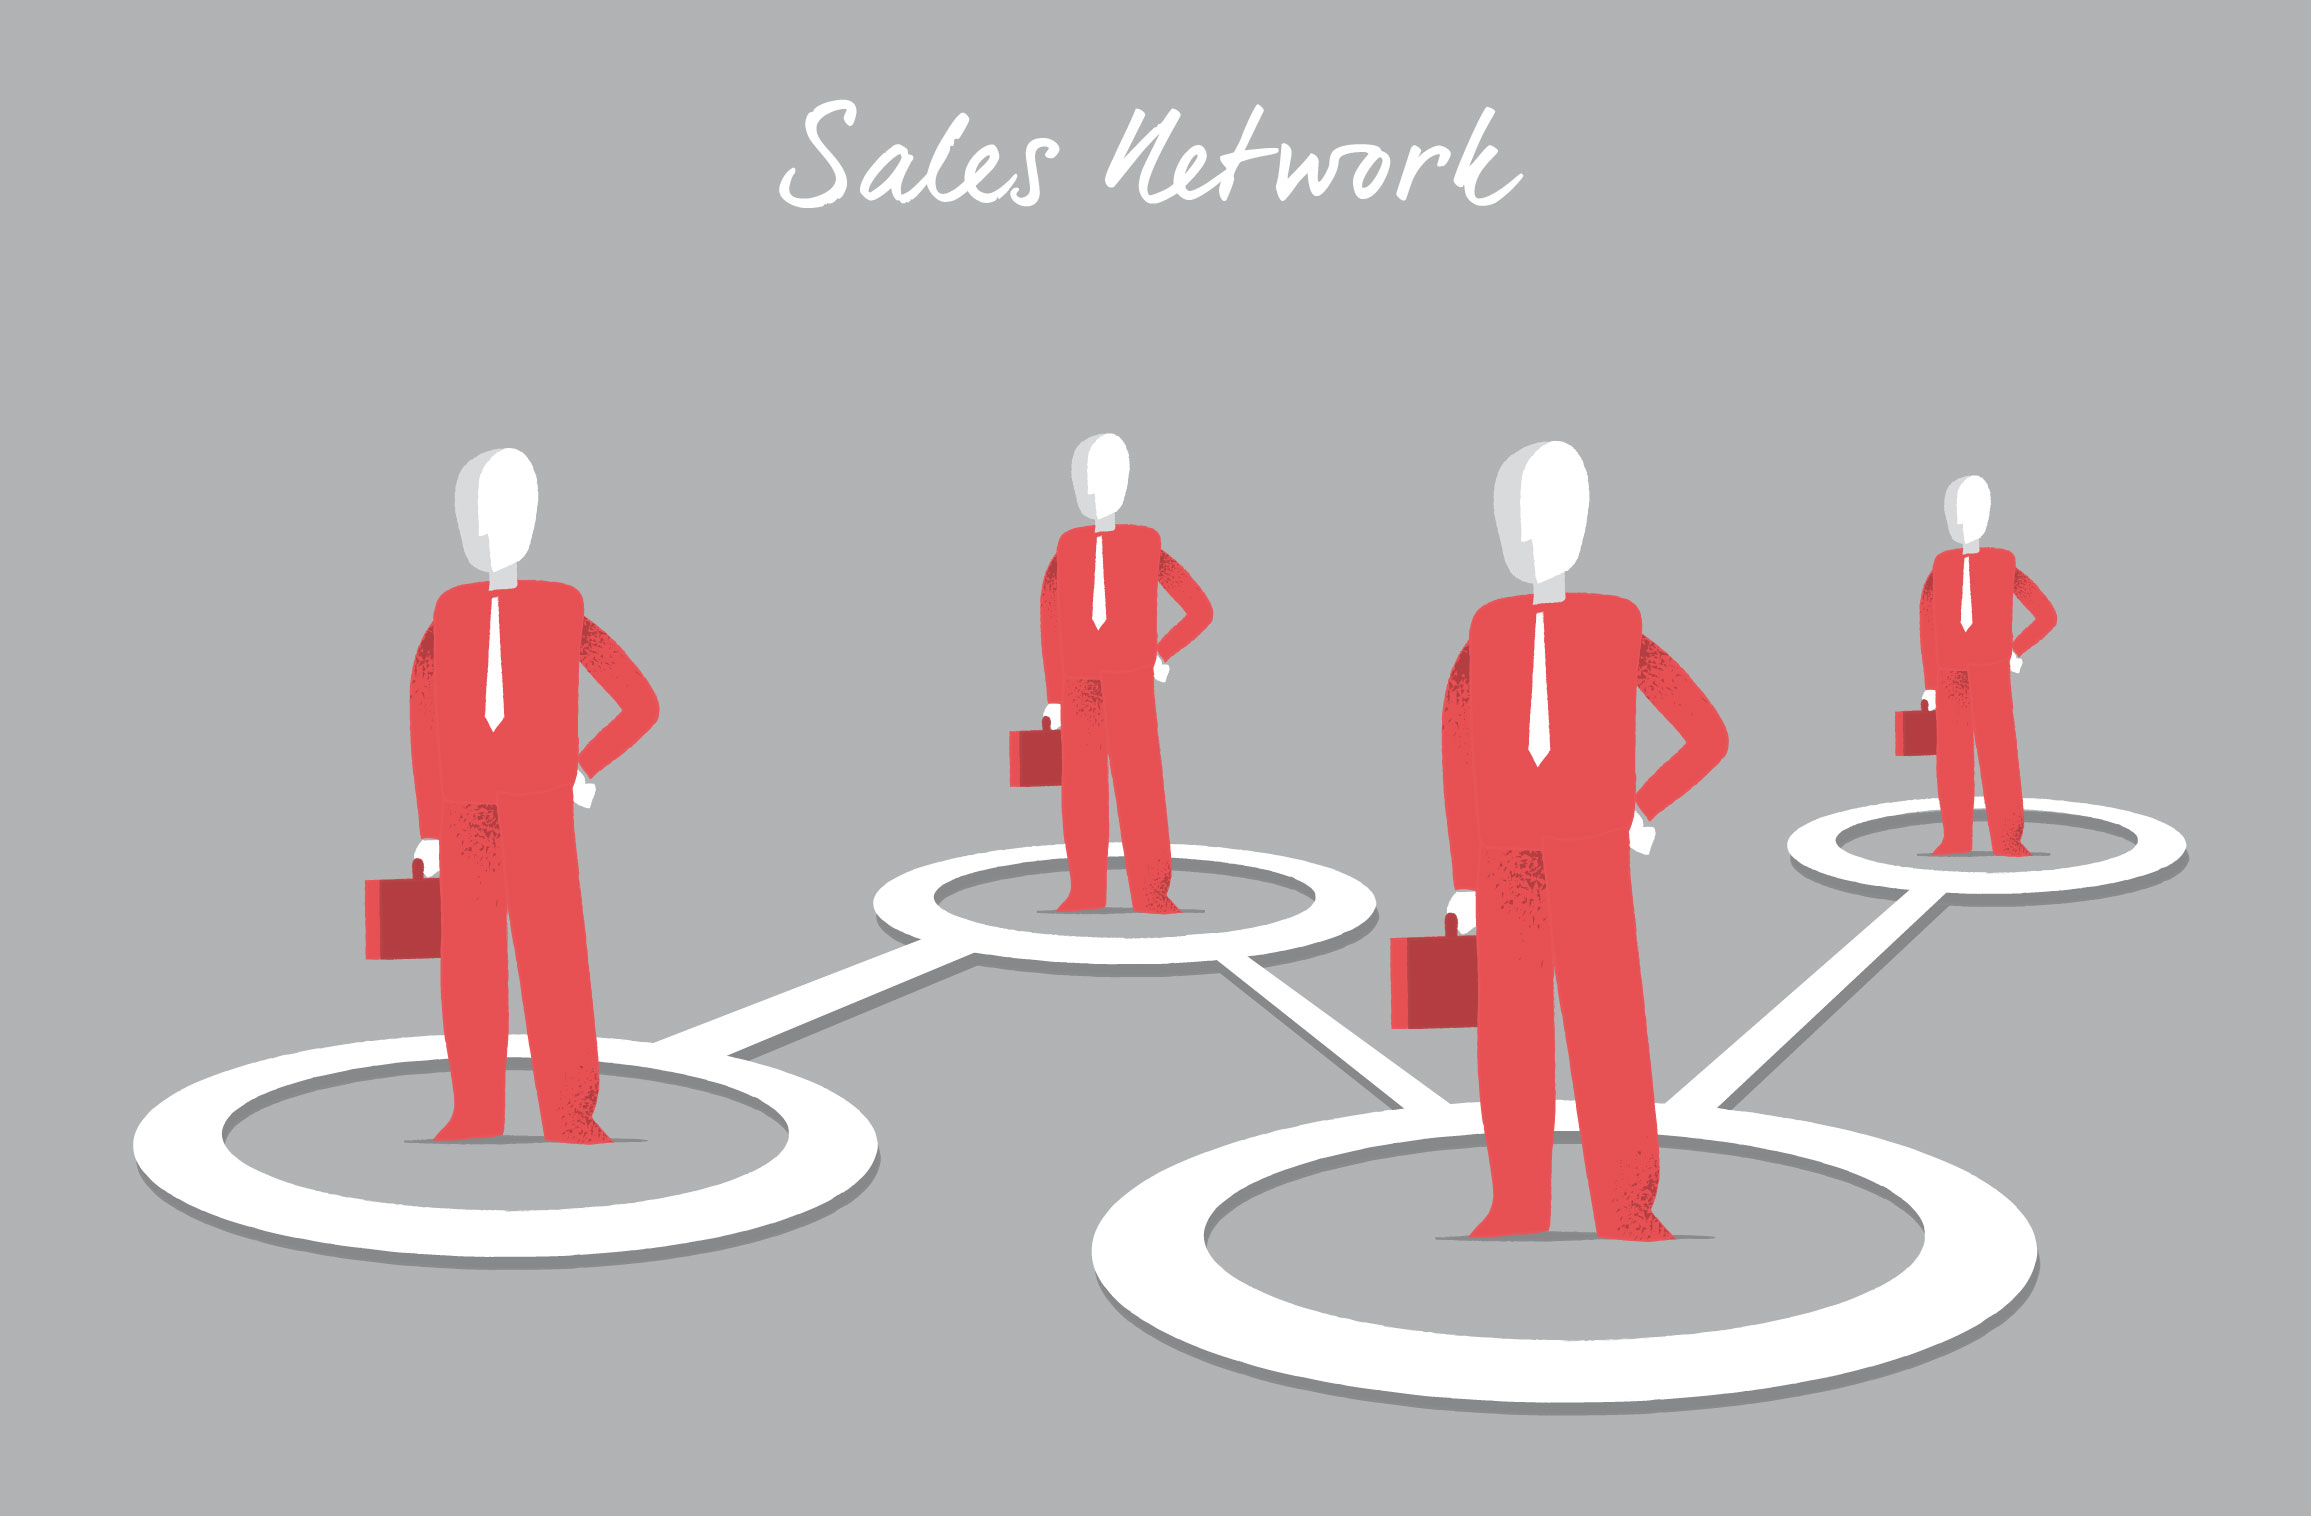 Sales Network vector art series by Hurca.com